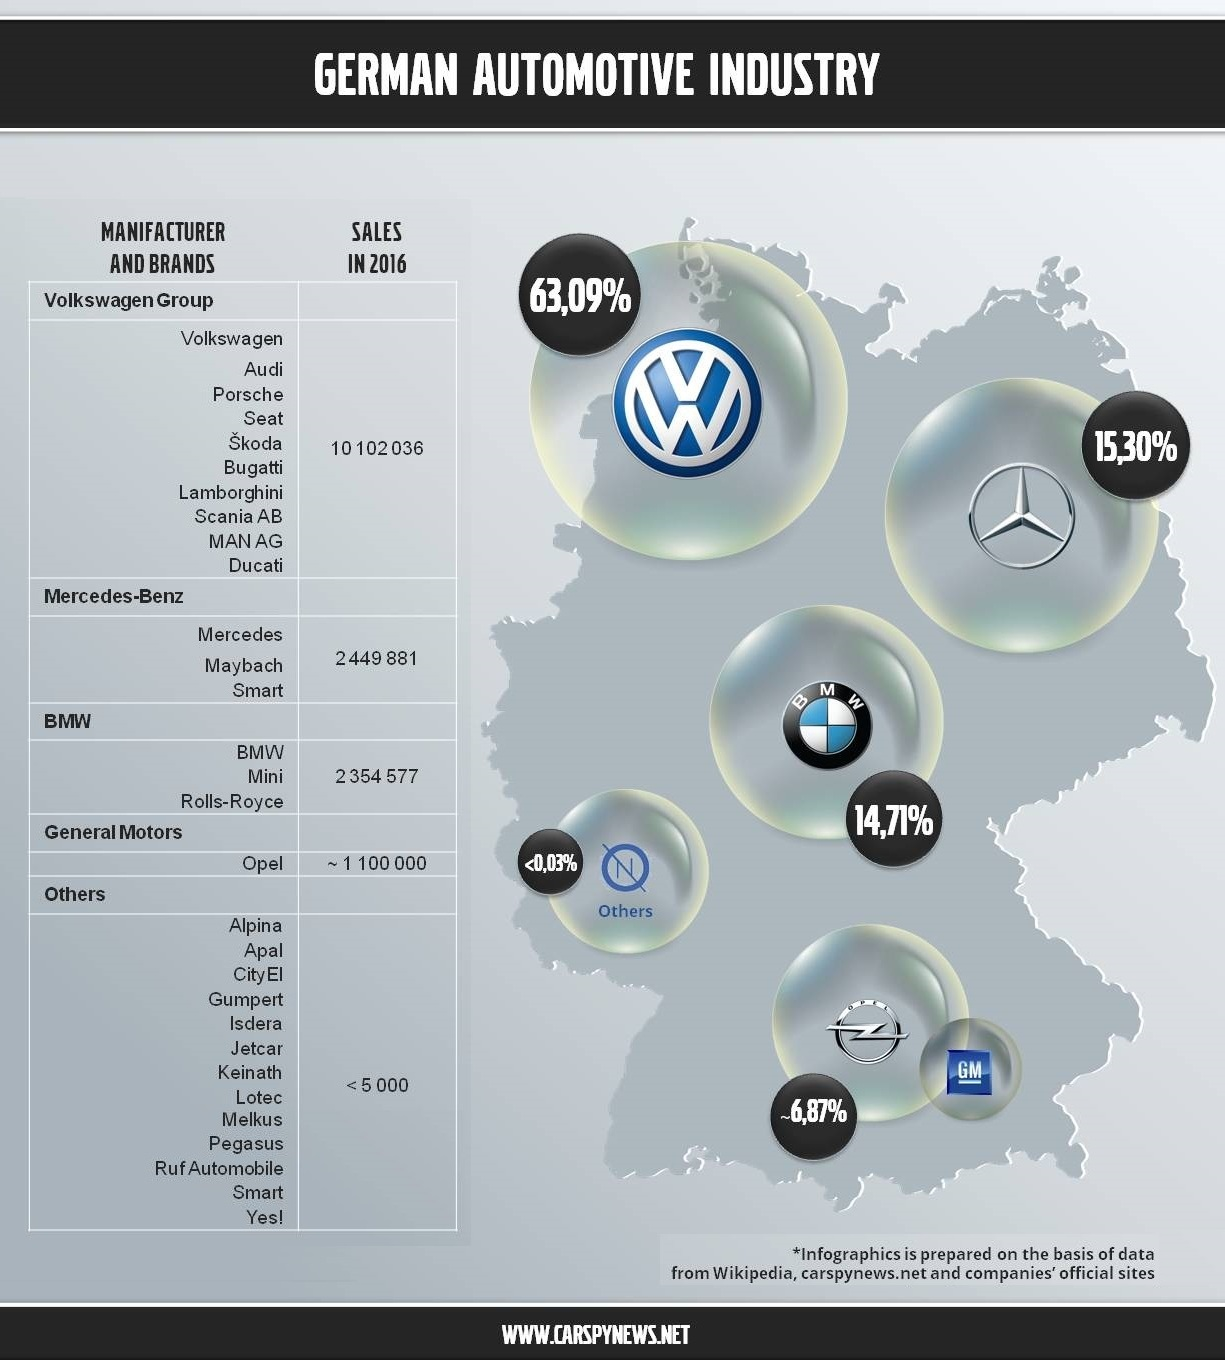 German Car Companies: Logos, Names, History Of Popular